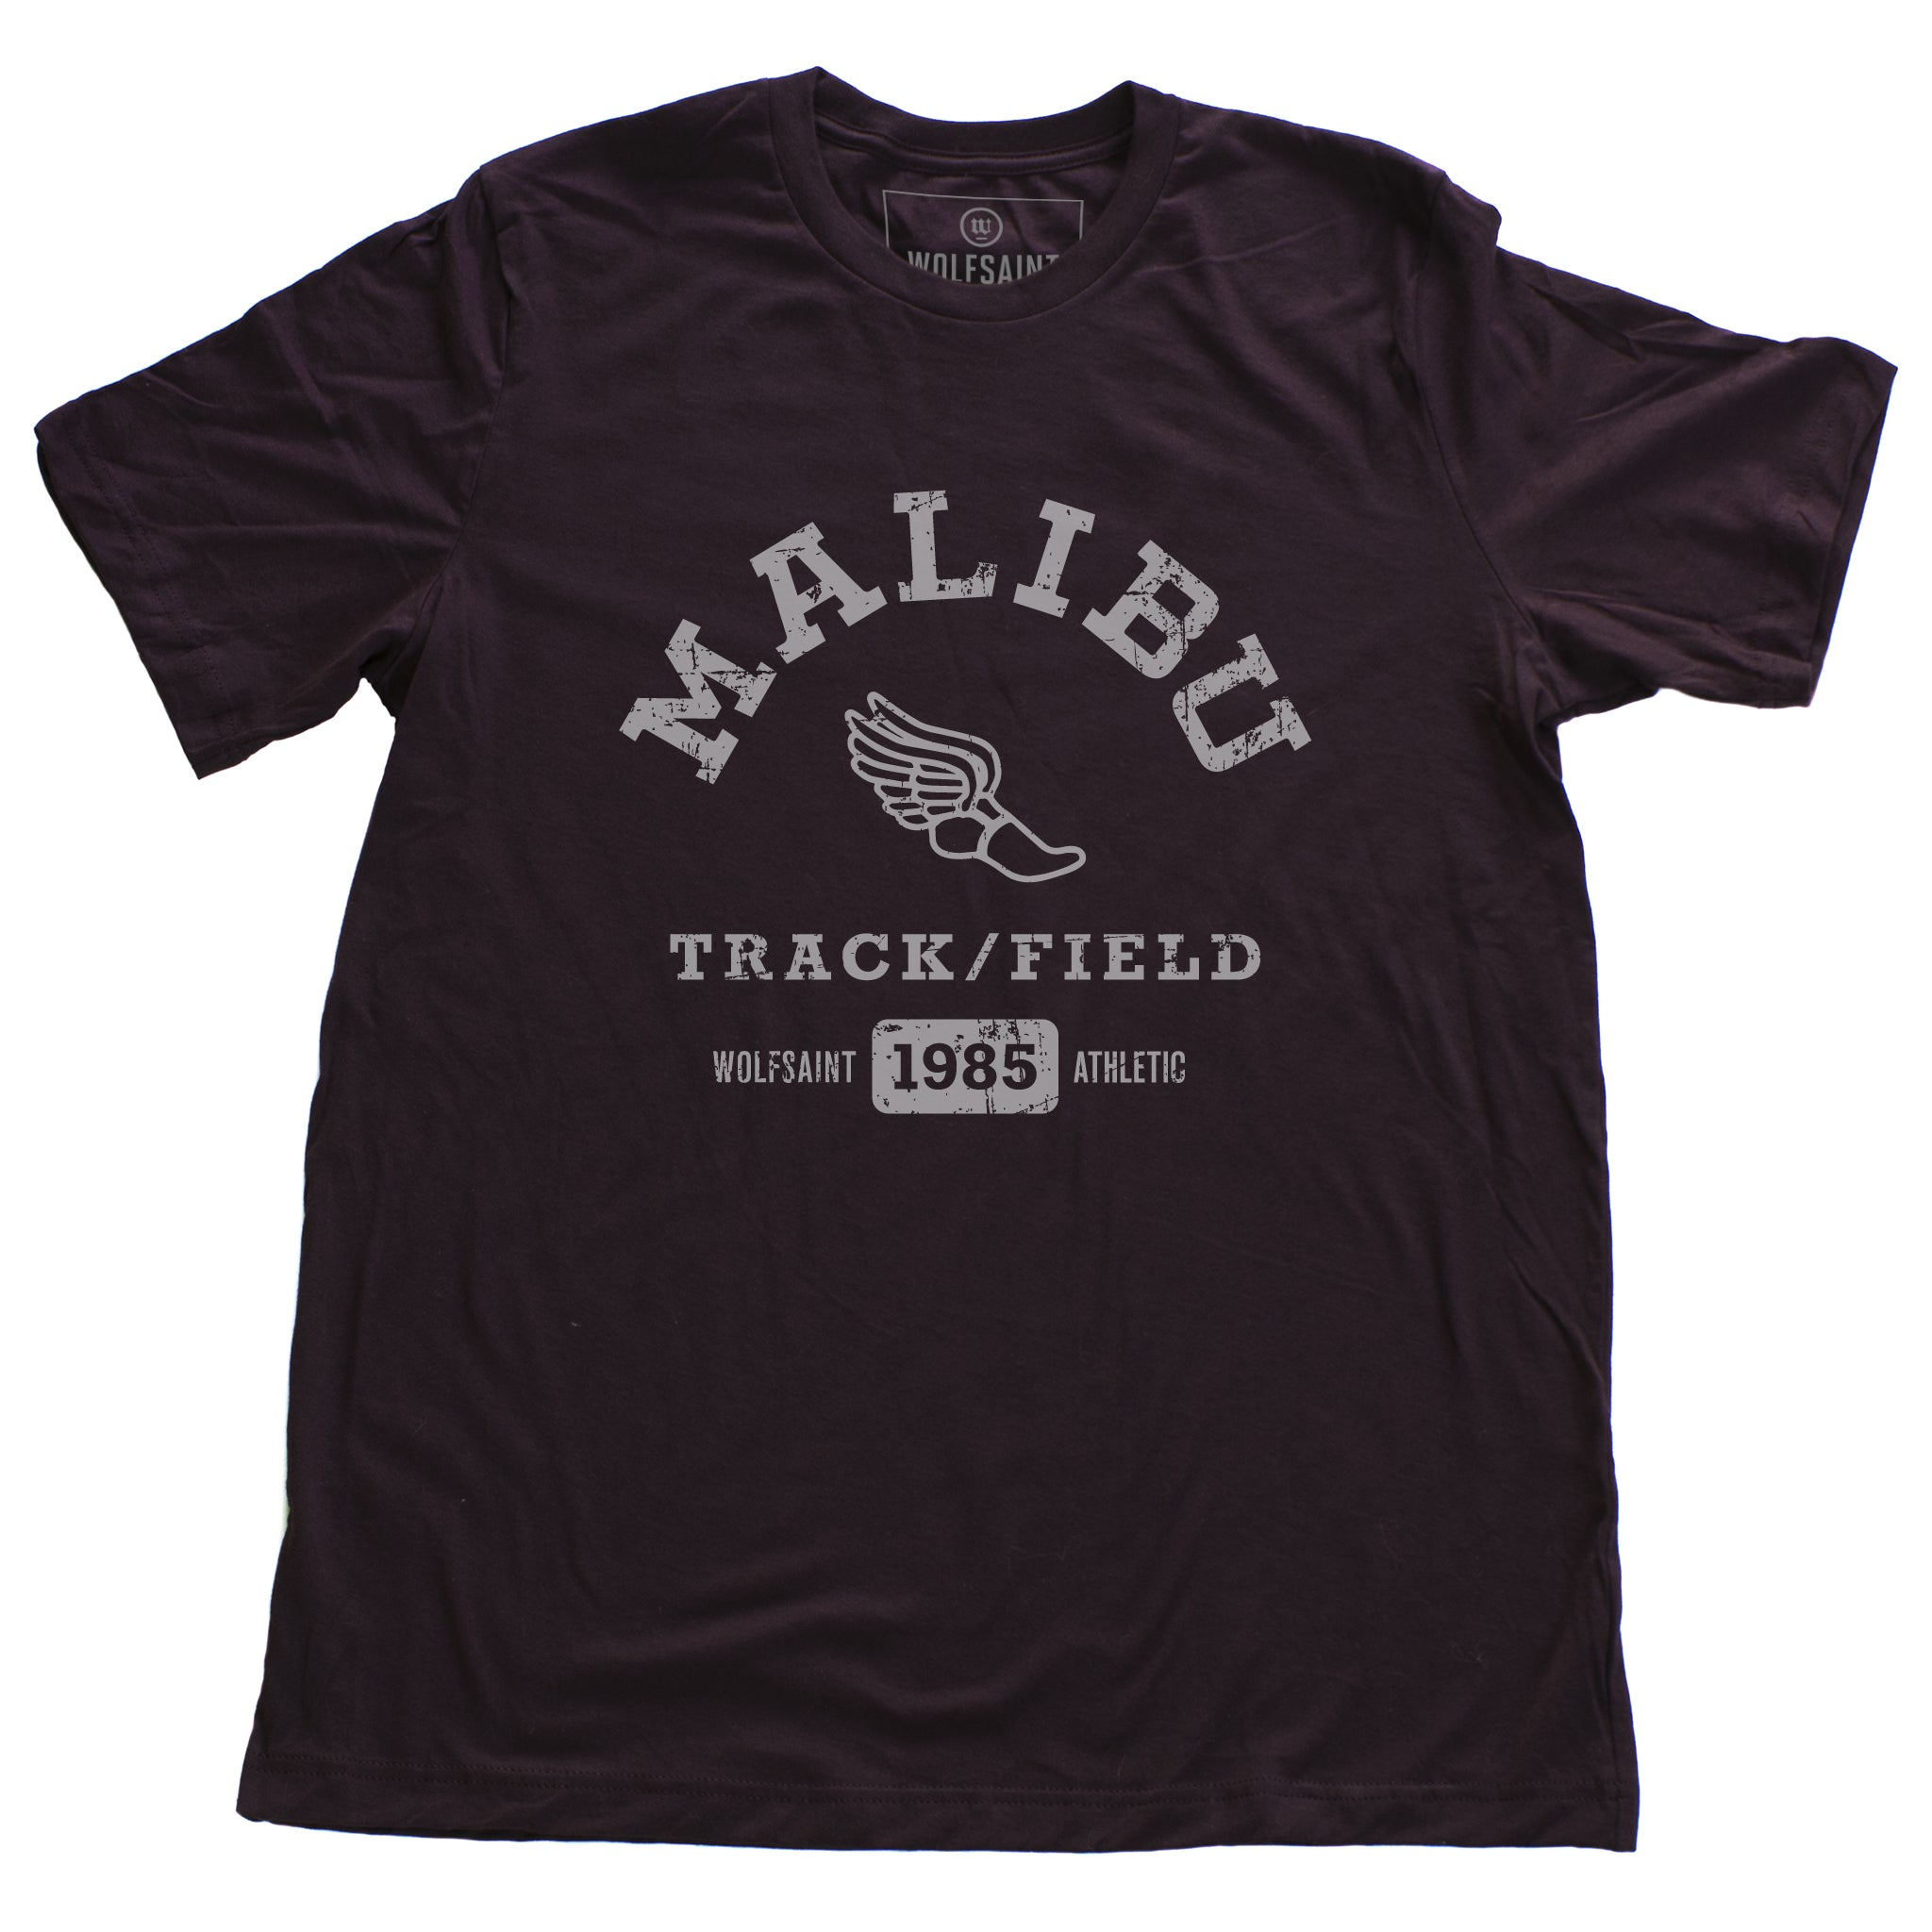 A fashionable, vintage-inspired retro t-shirt in Oxblood/maroon, featuring a graphic representing a sarcastic and fictitious Malibu (California) Track and Field team. From wolfsaint.net